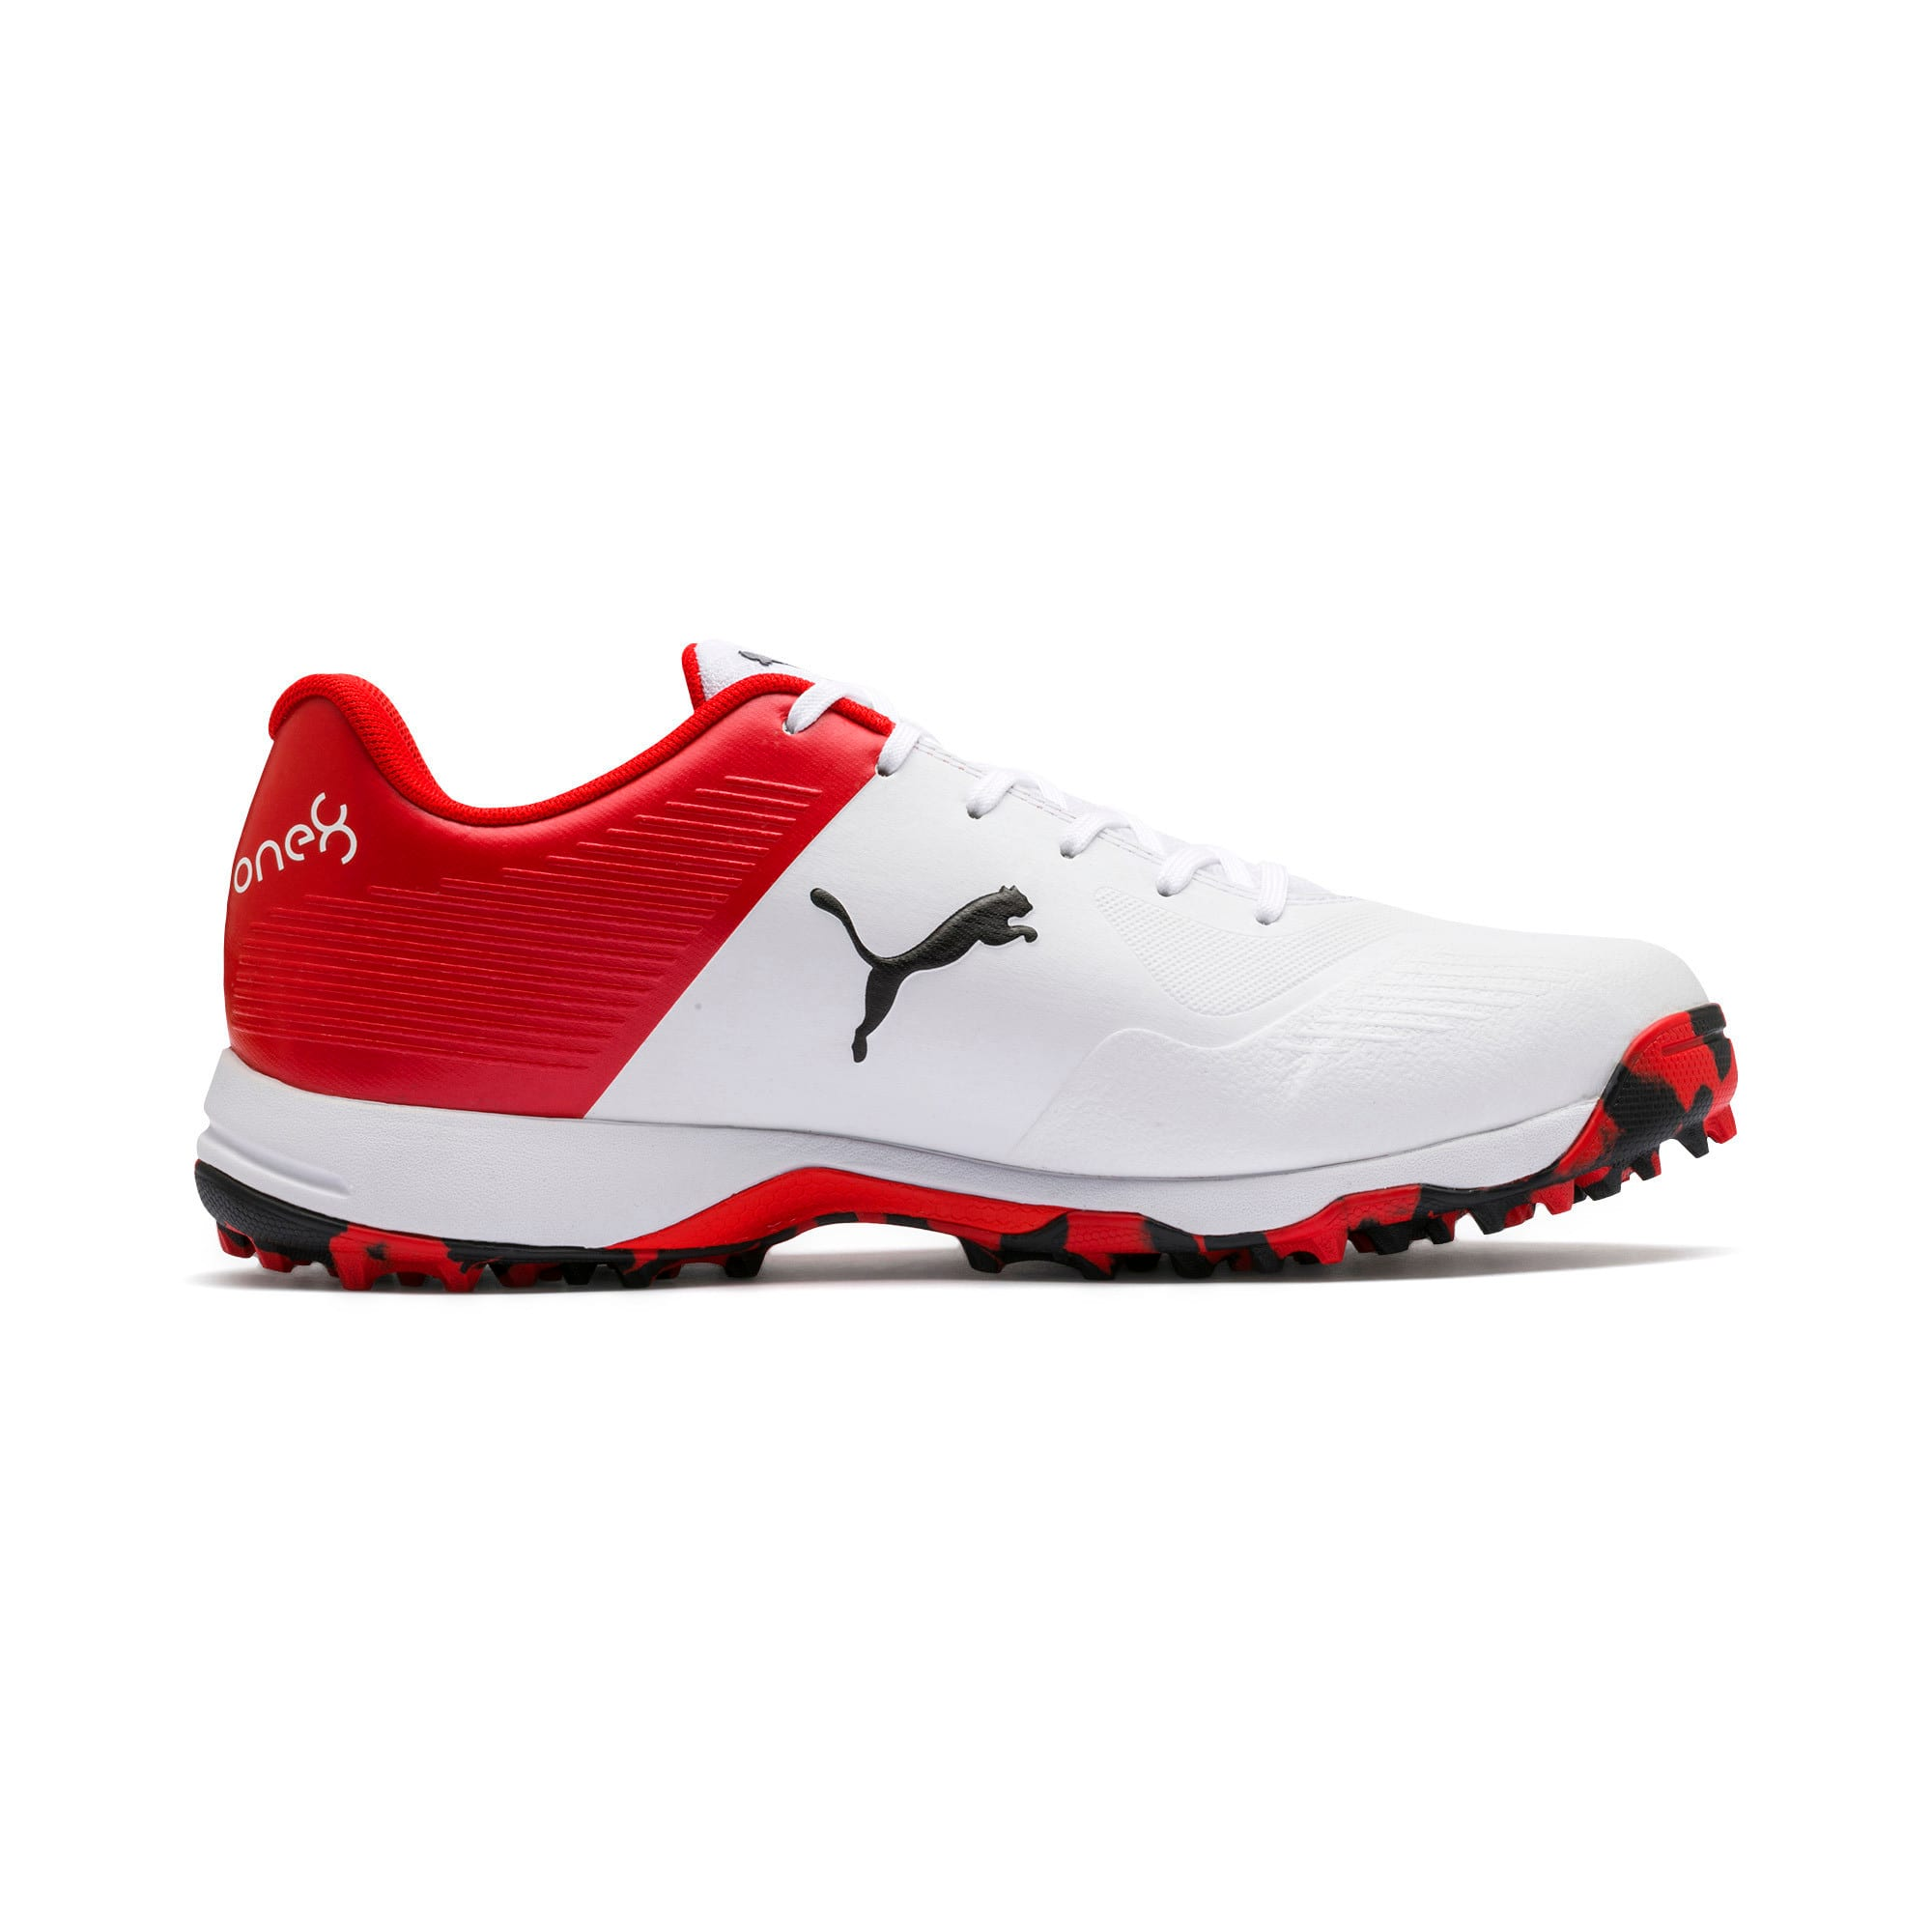 Thumbnail 5 of PUMA 19 FH Rubber Men's Cricket Shoes, White-Black-High Risk Red, medium-IND